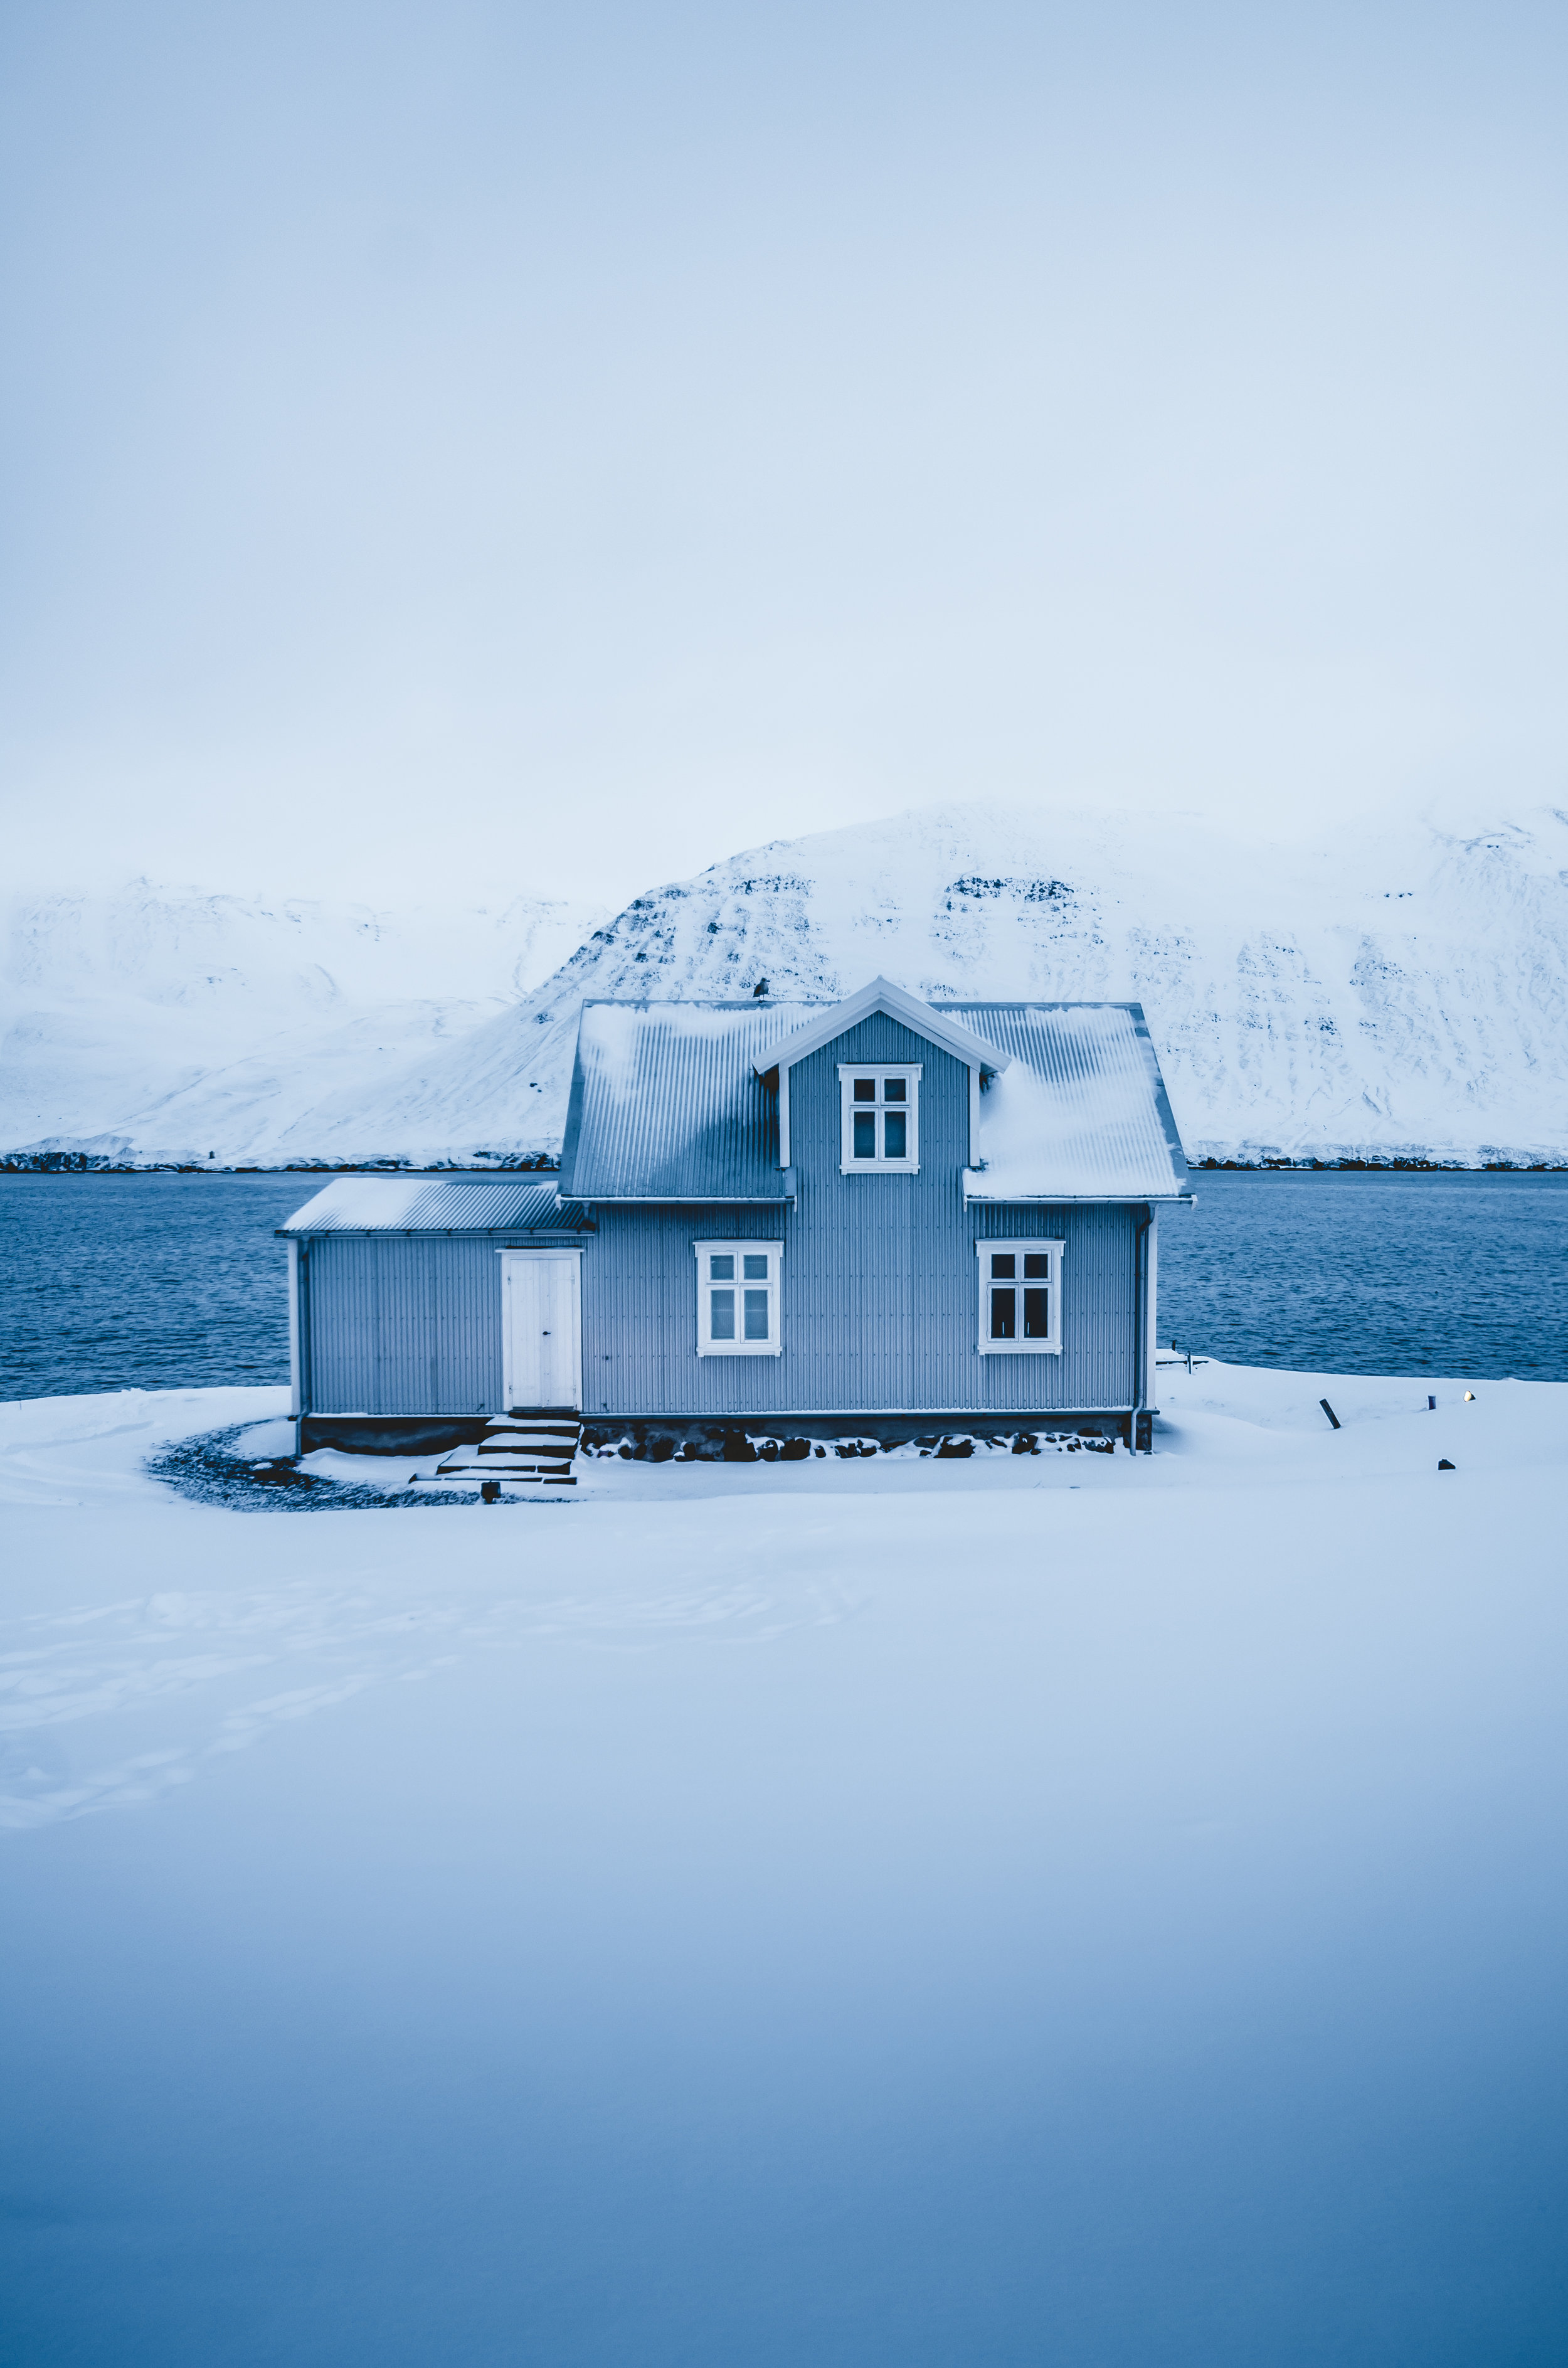 Photo of a house during the winter months in Iceland, photographed using a portrait (vertical) photo composition.